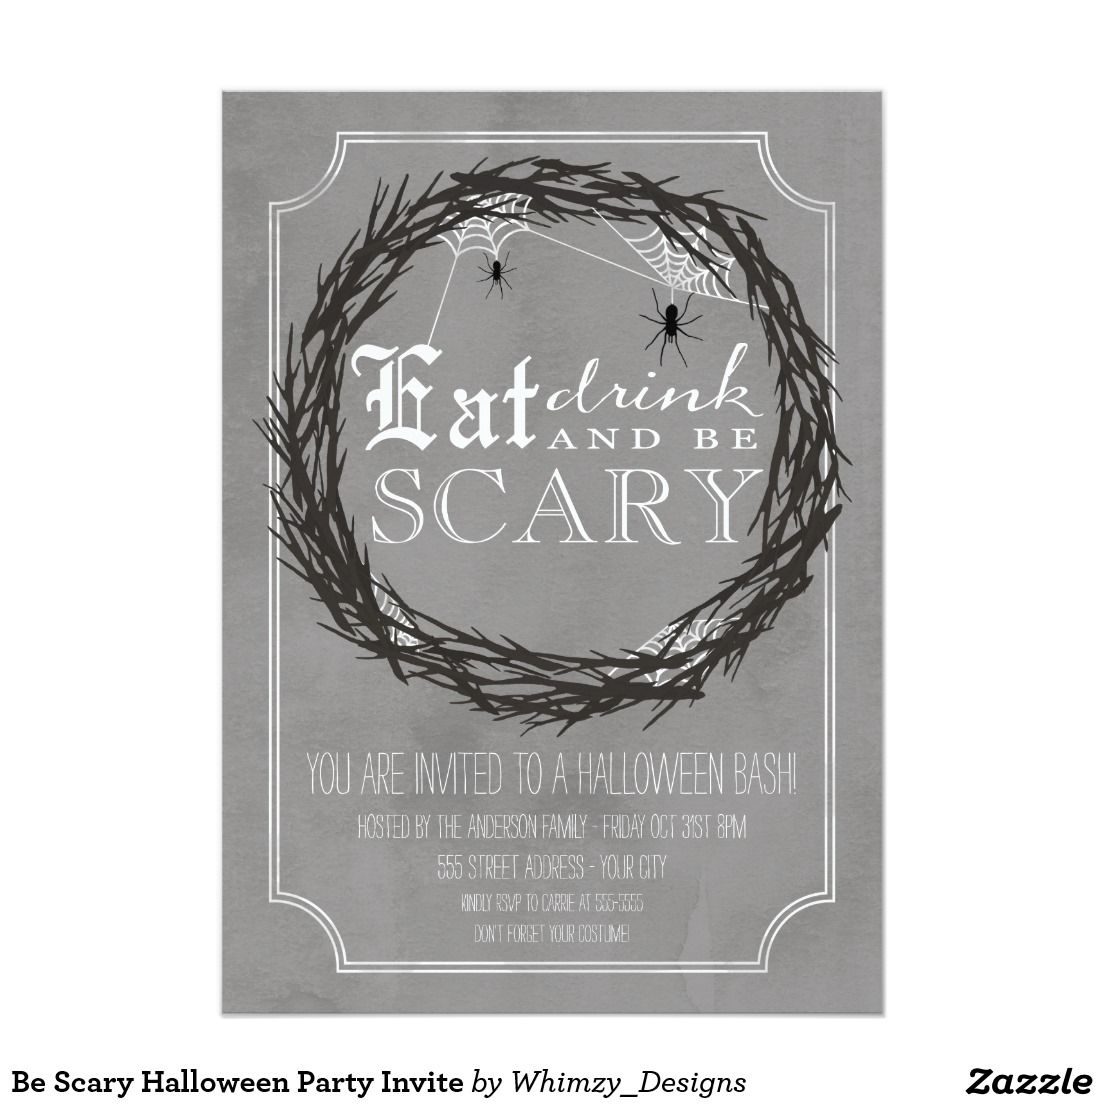 Be Scary Halloween Party Invite | Halloween Party Invitations ...